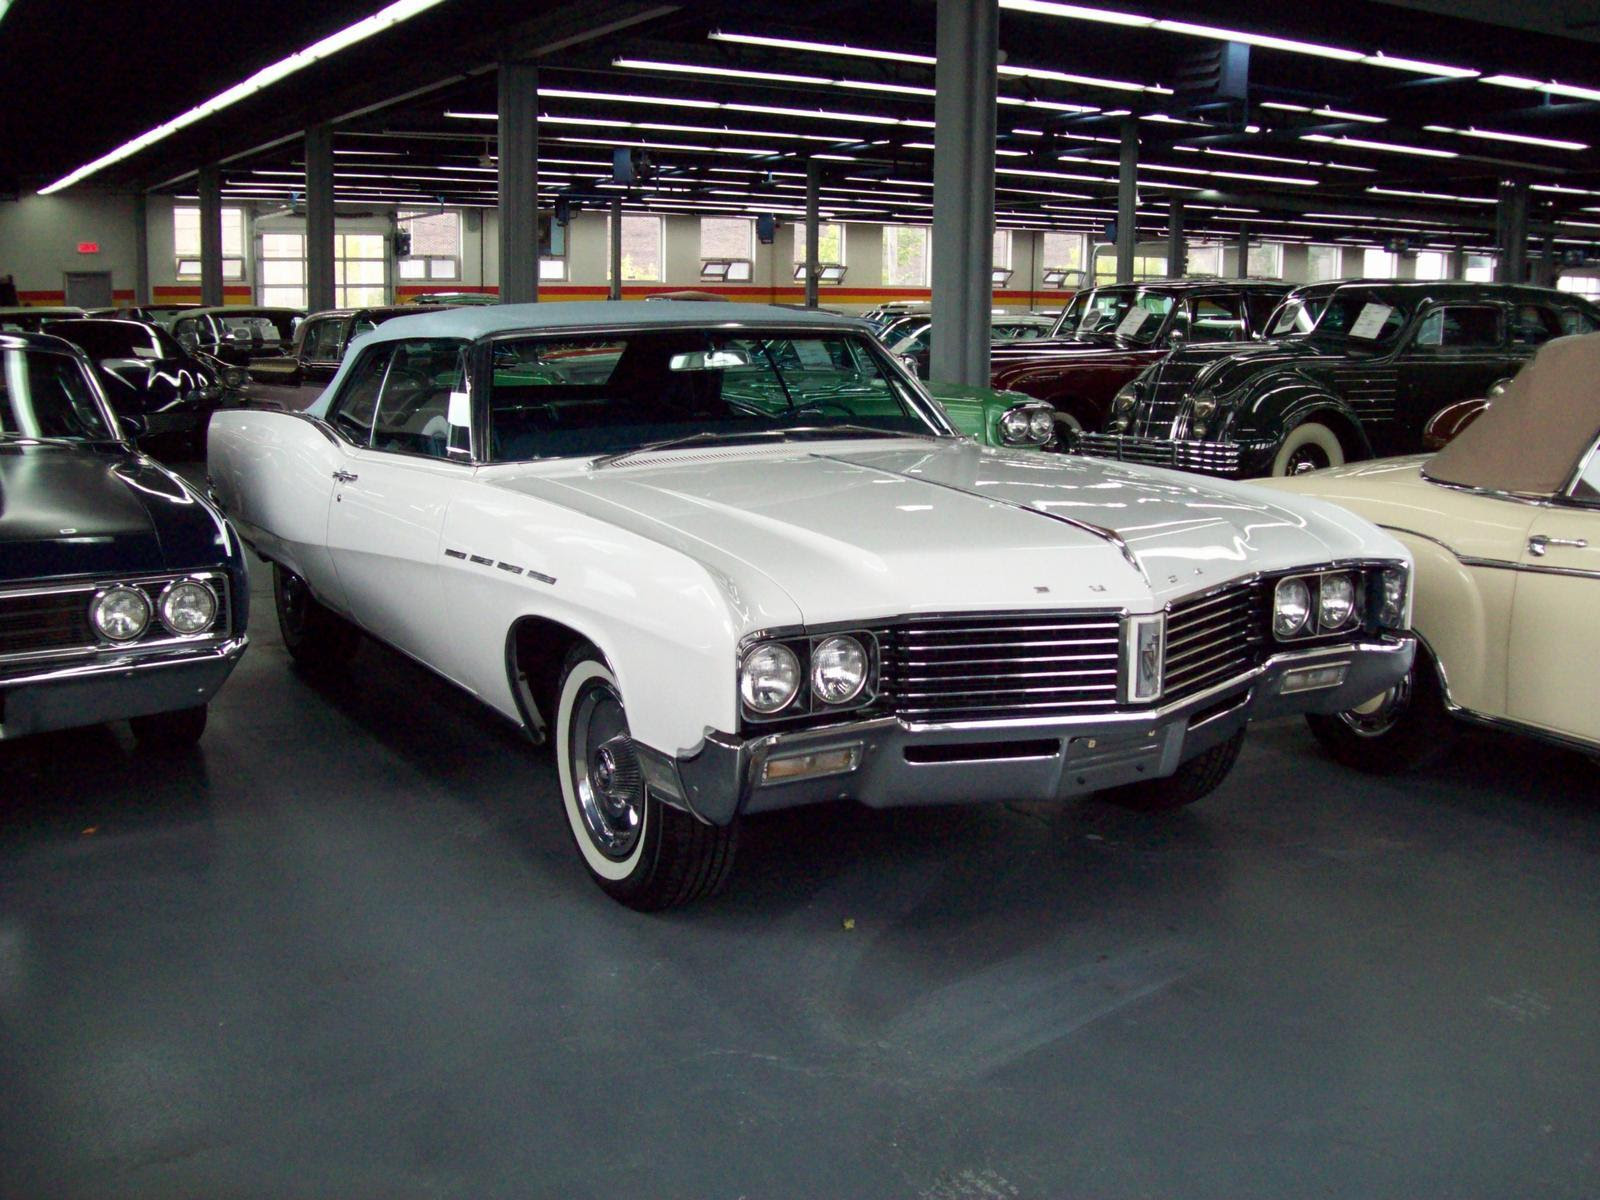 Used 1967 Buick Electra 225 Convertible For Sale In Saint Leonard John Scotti Classic Cars H1r 2y7 2070776